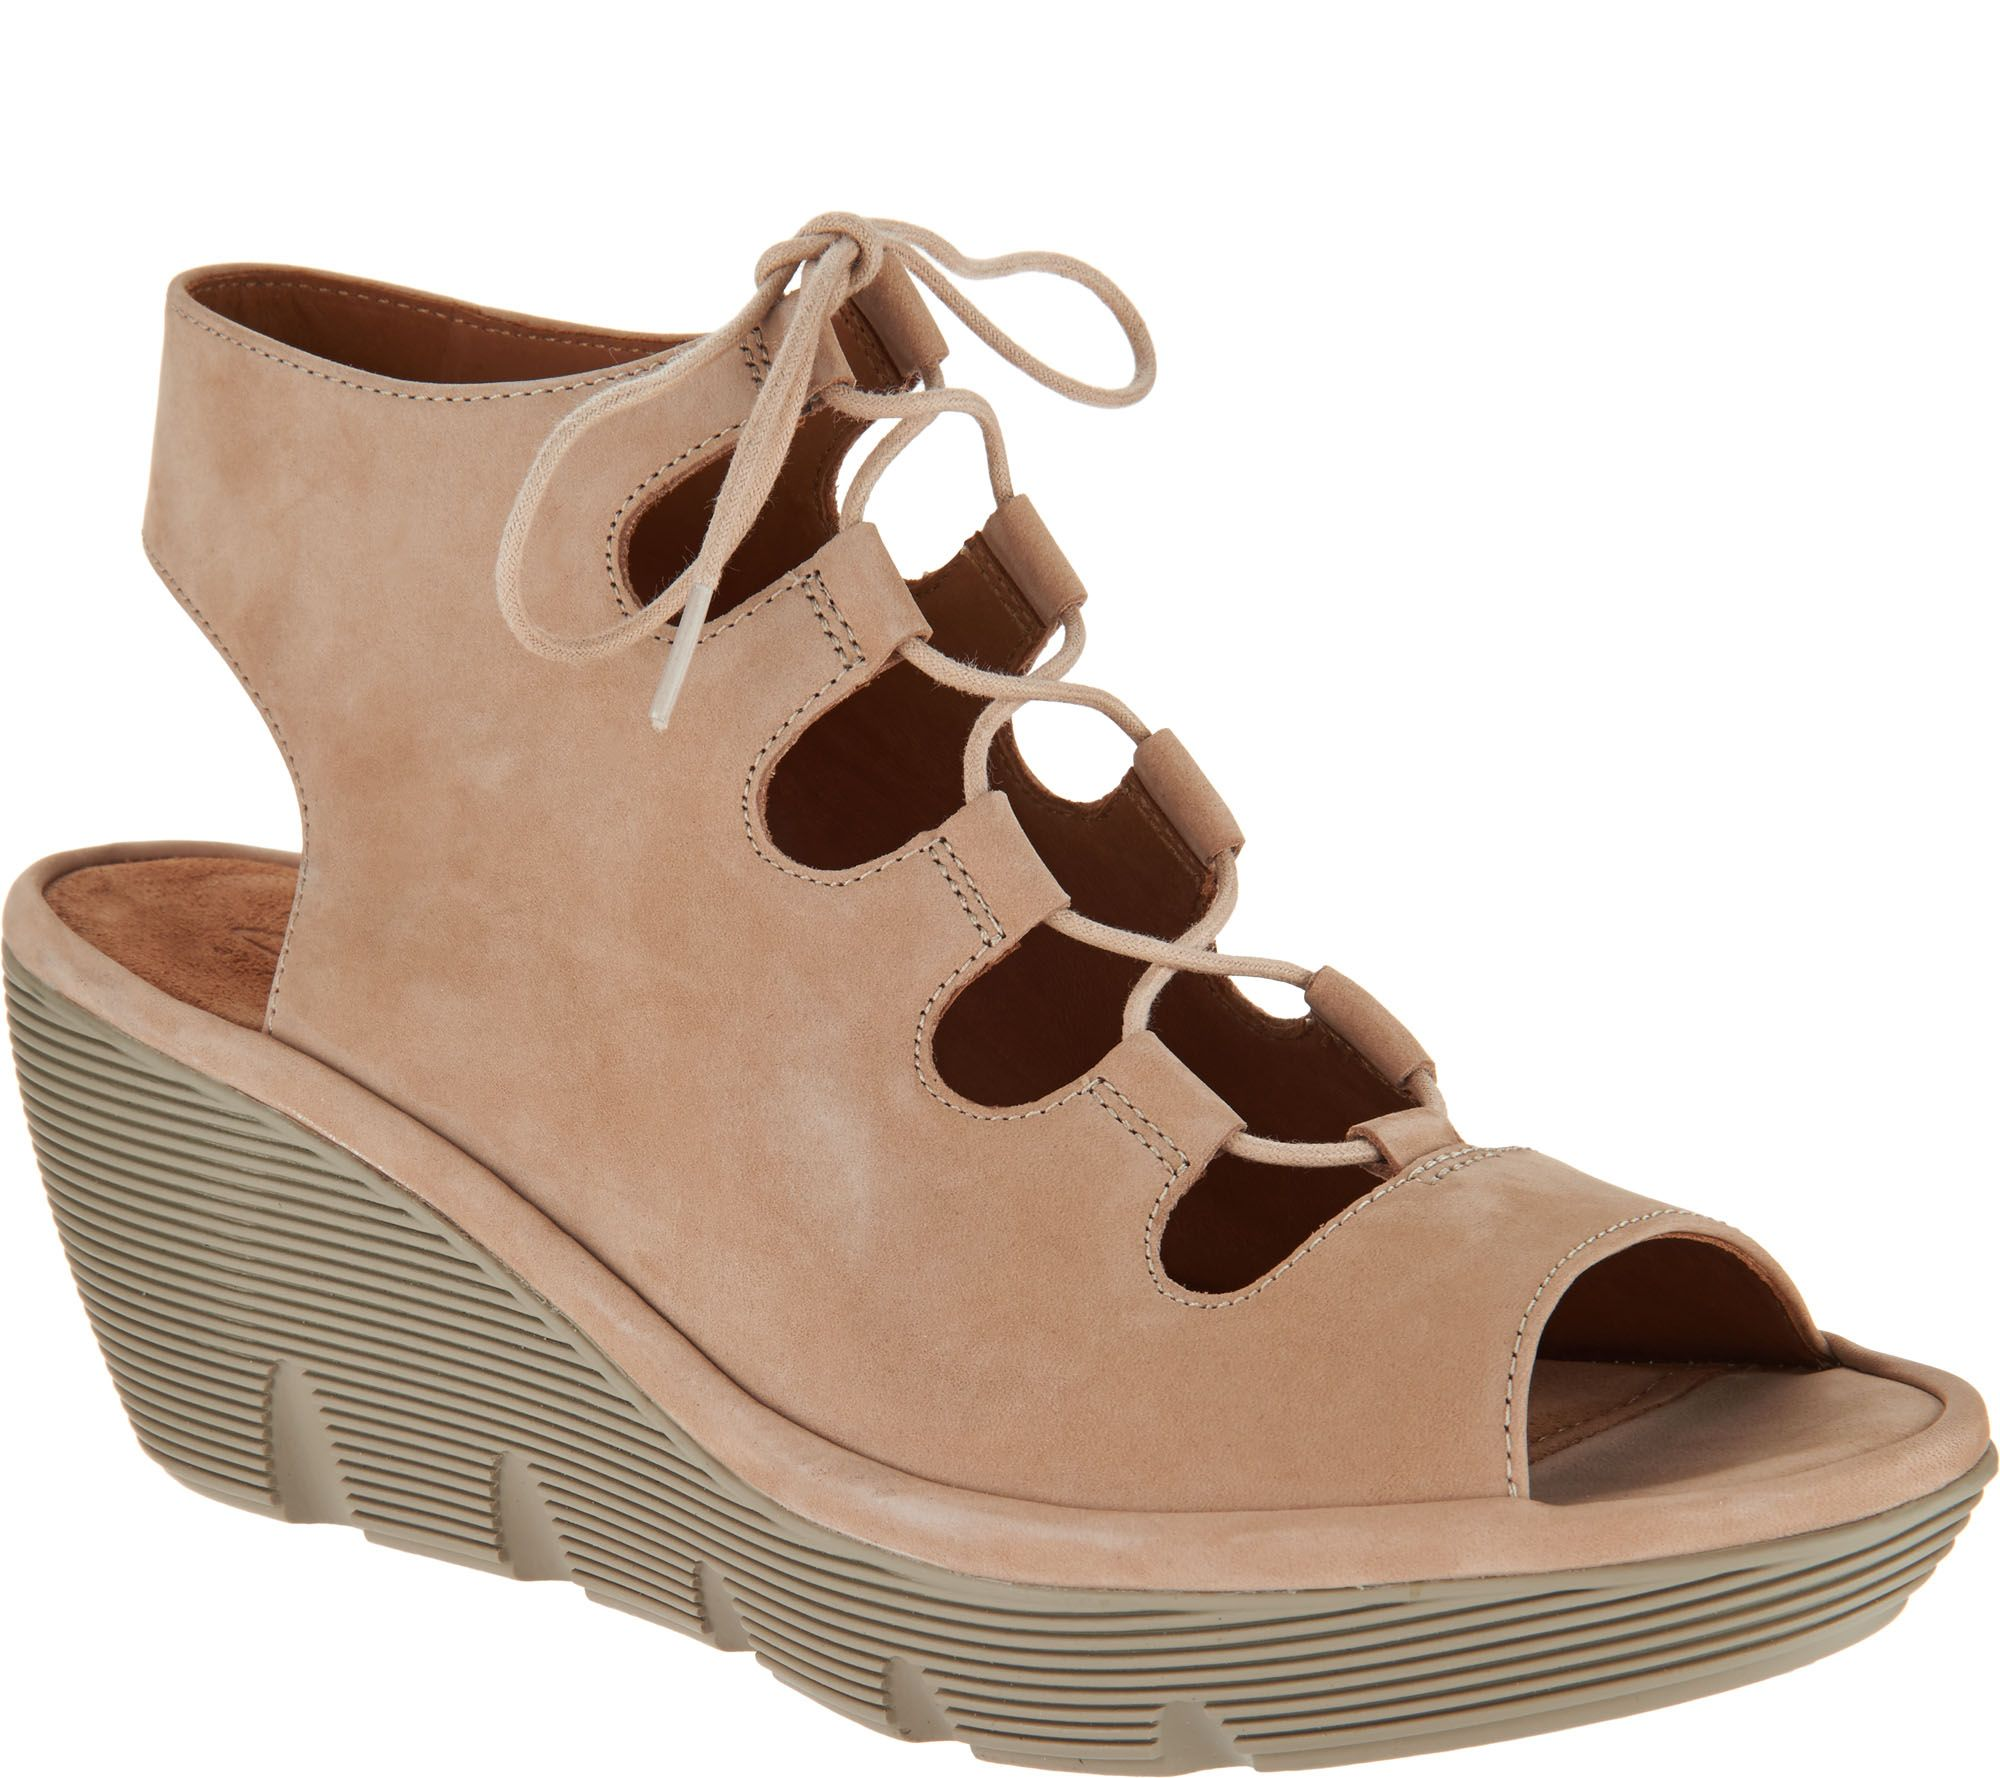 c1f7ce5085b Clarks Artisan Leather Ghillie Wedge Sandals - Clarene Grace - Page 1 —  QVC.com